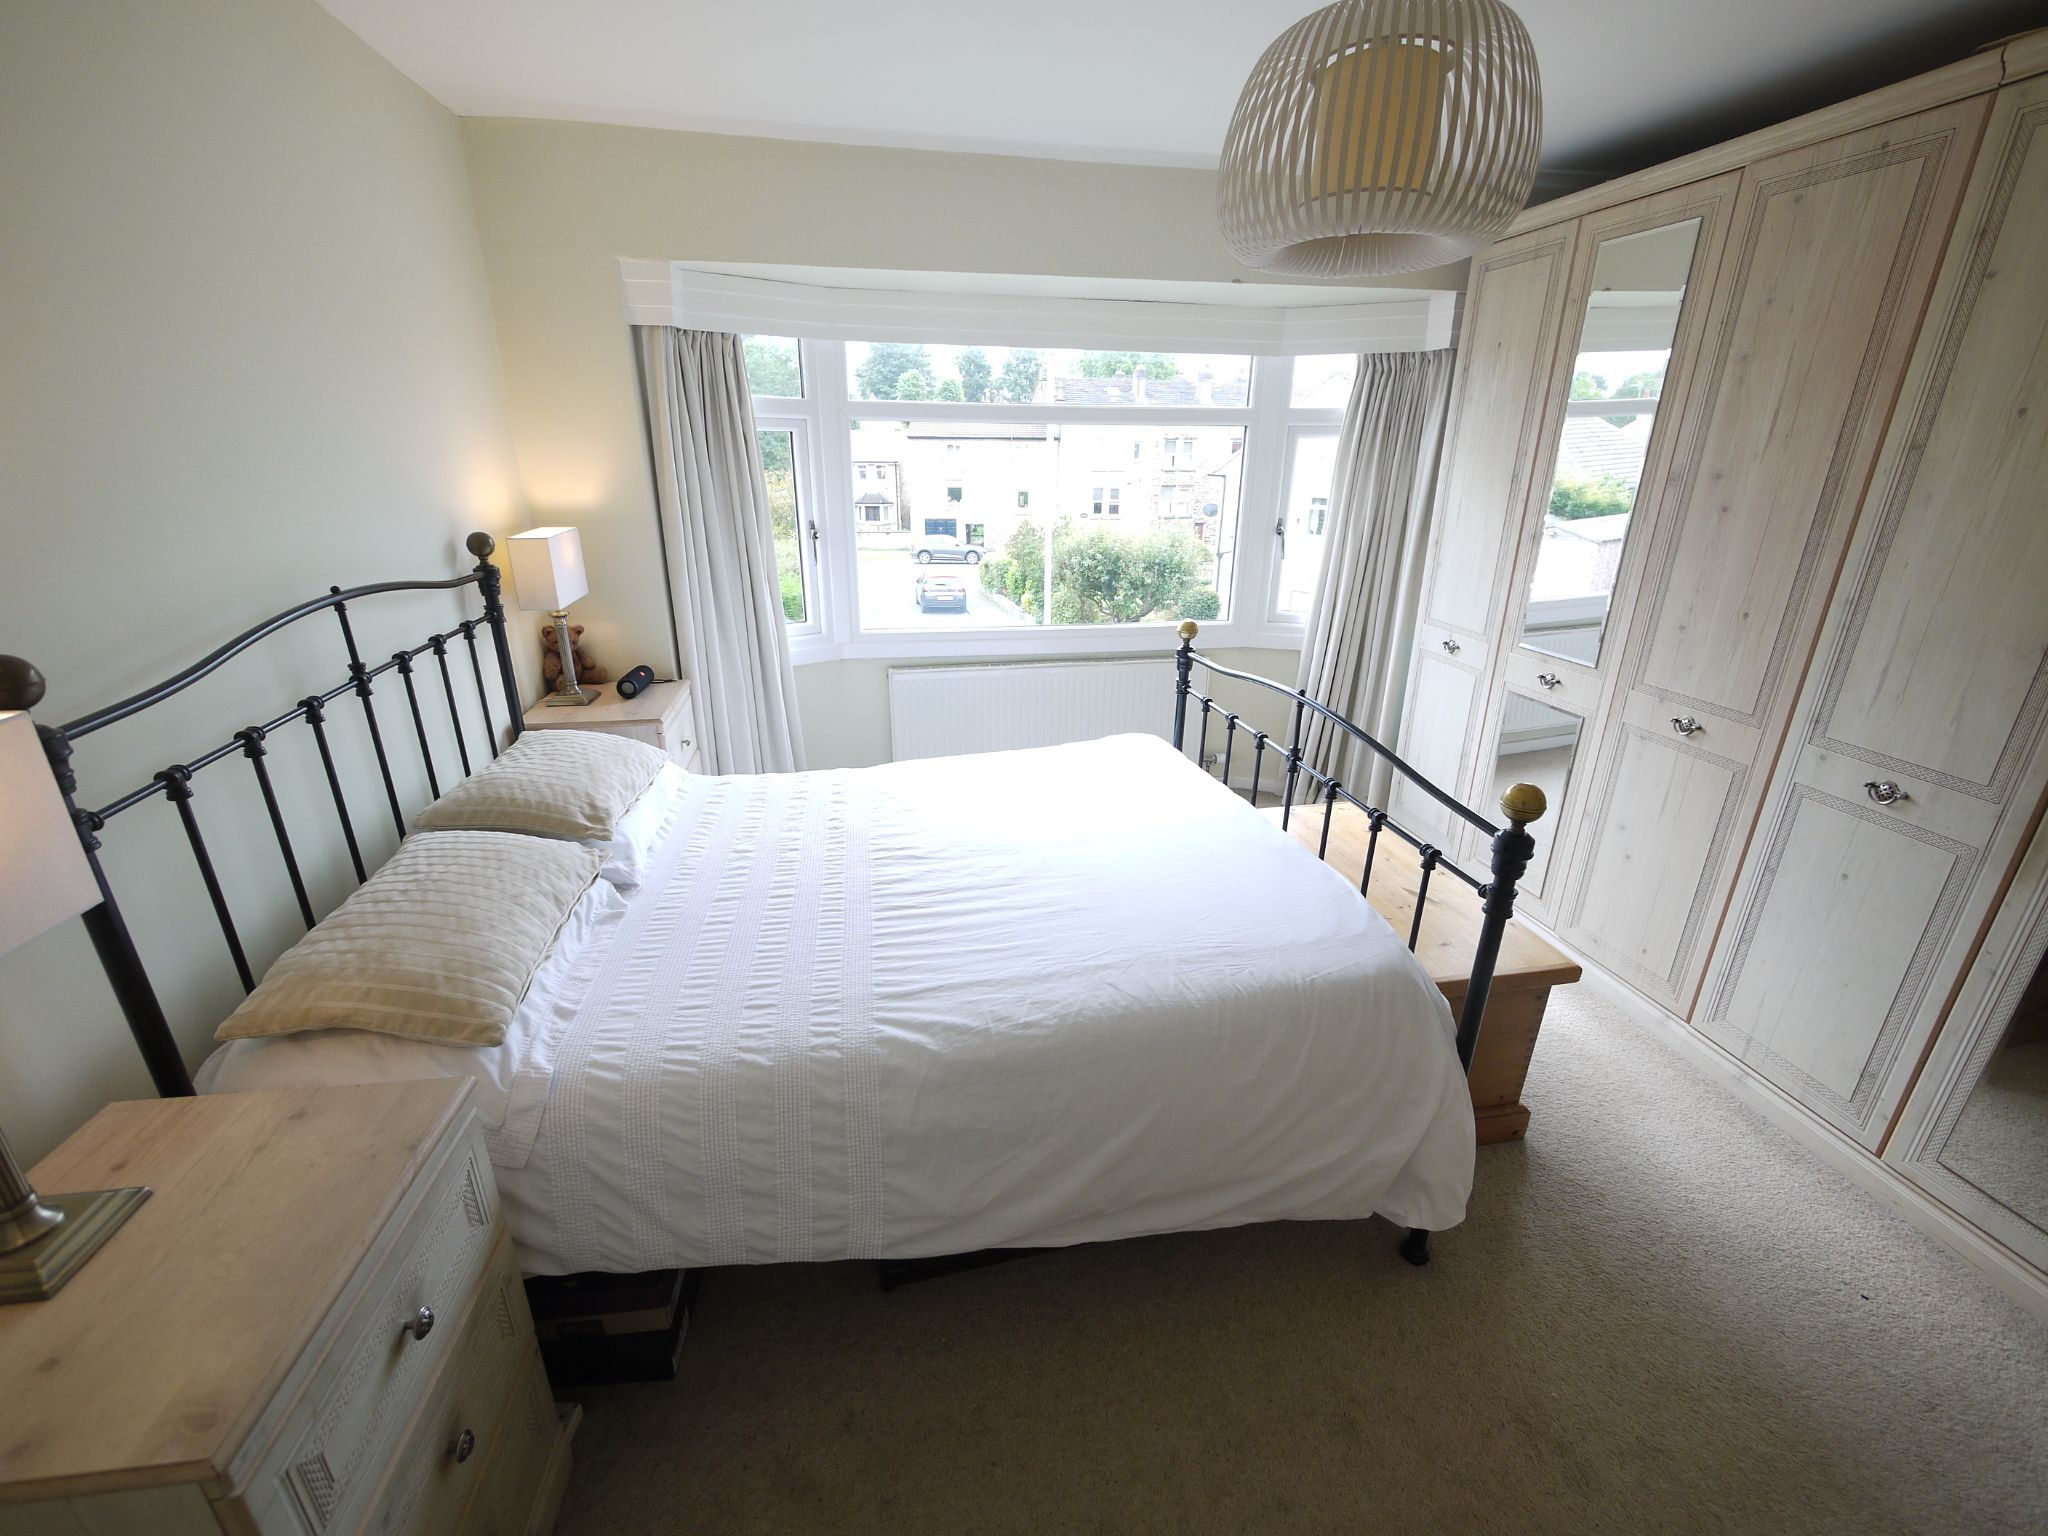 3 bedroom semi-detached house SSTC in Brighouse - Bedroom 1.